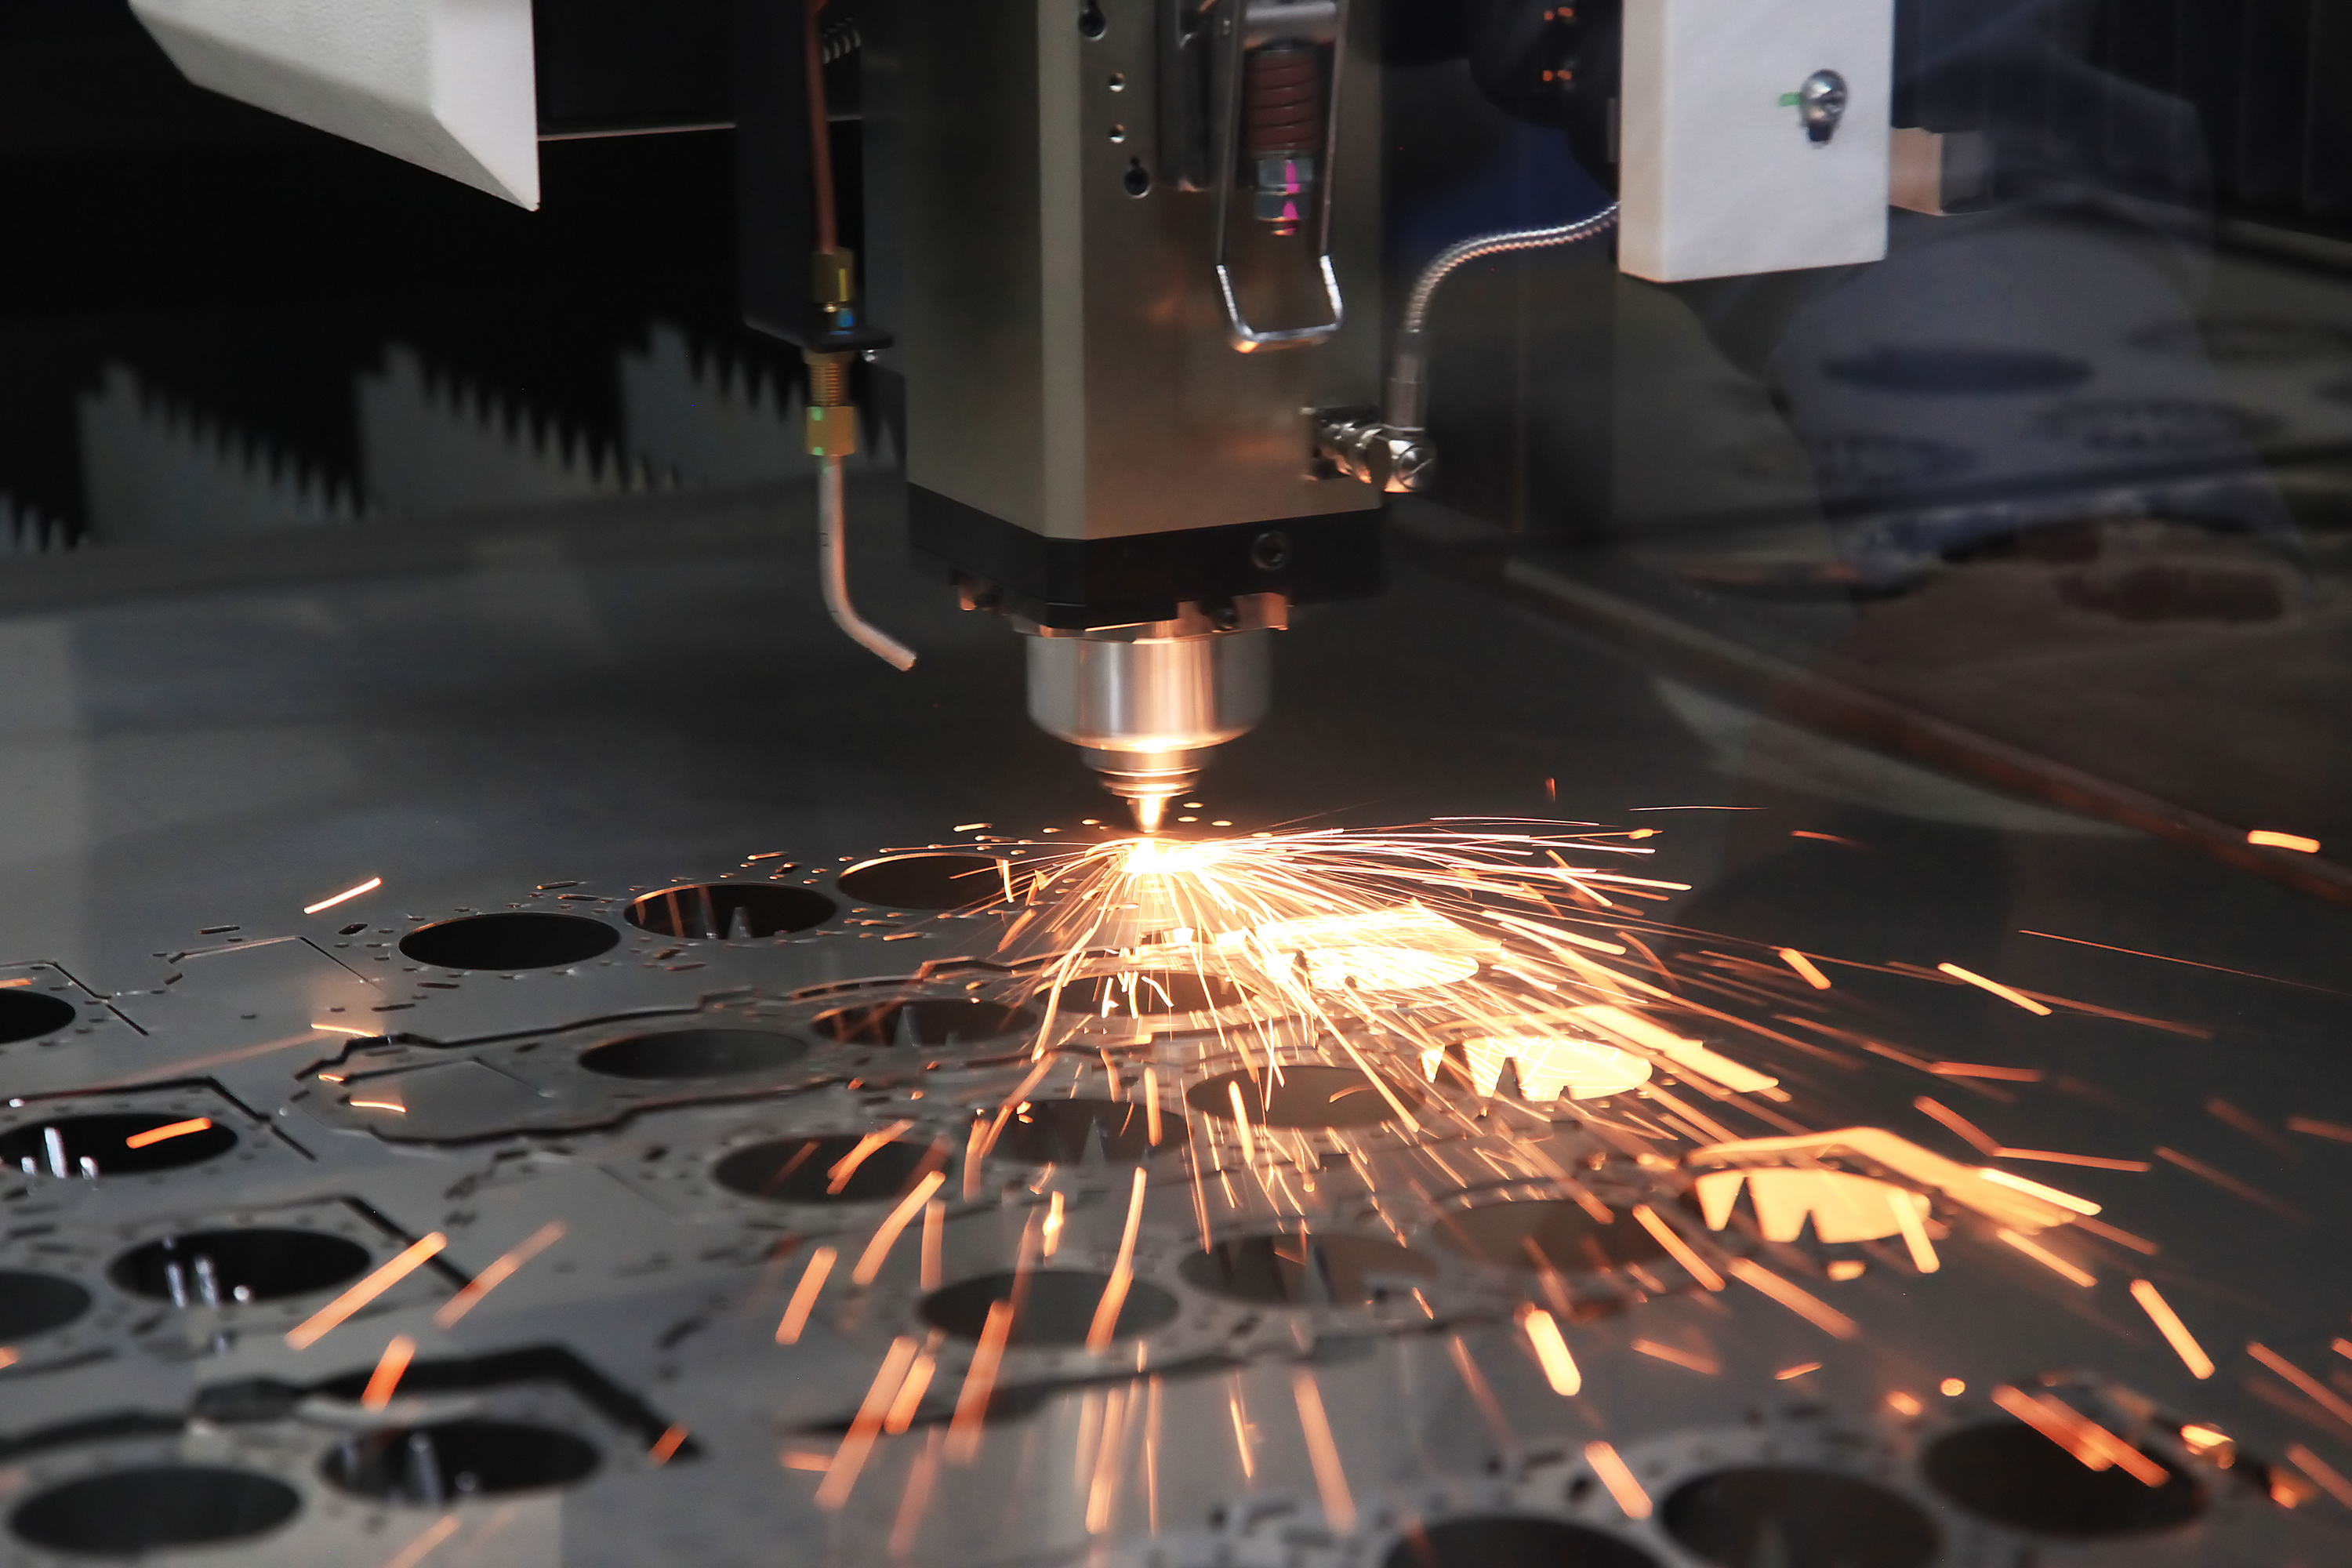 Purchasing a laser? Concerned about ROI? Consider These 4 Tips